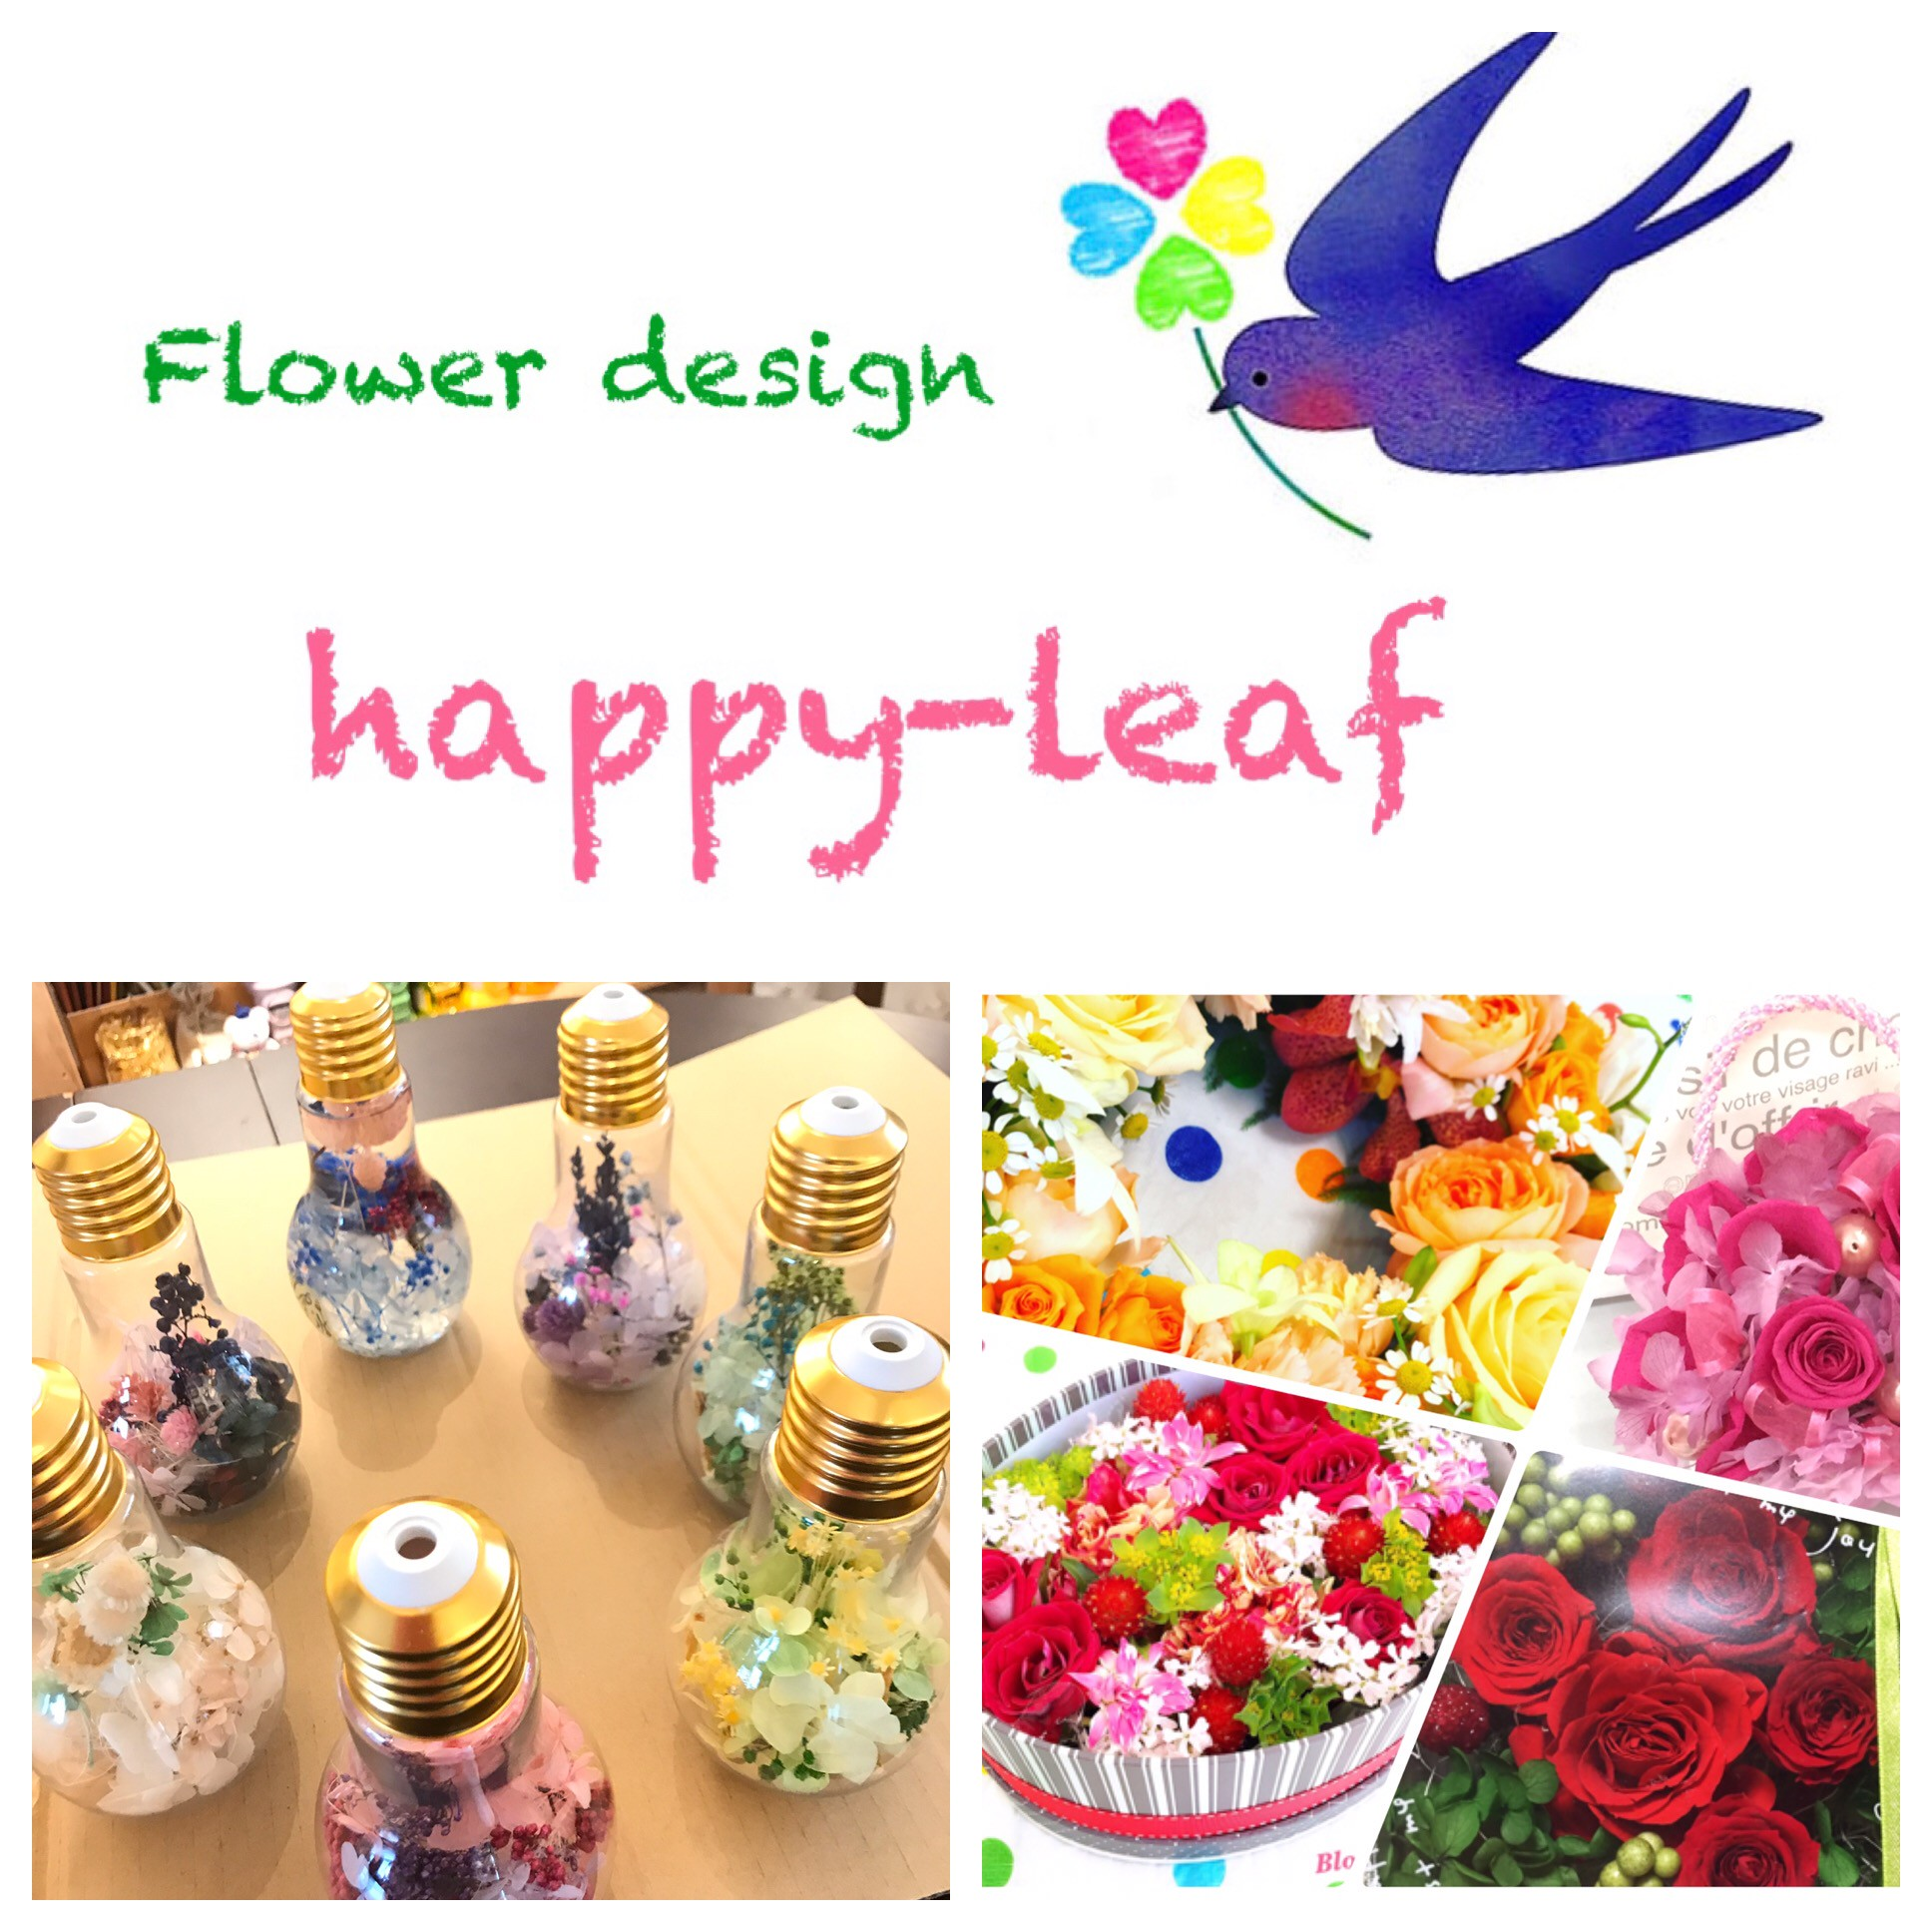 Flower design  happy-Leaf